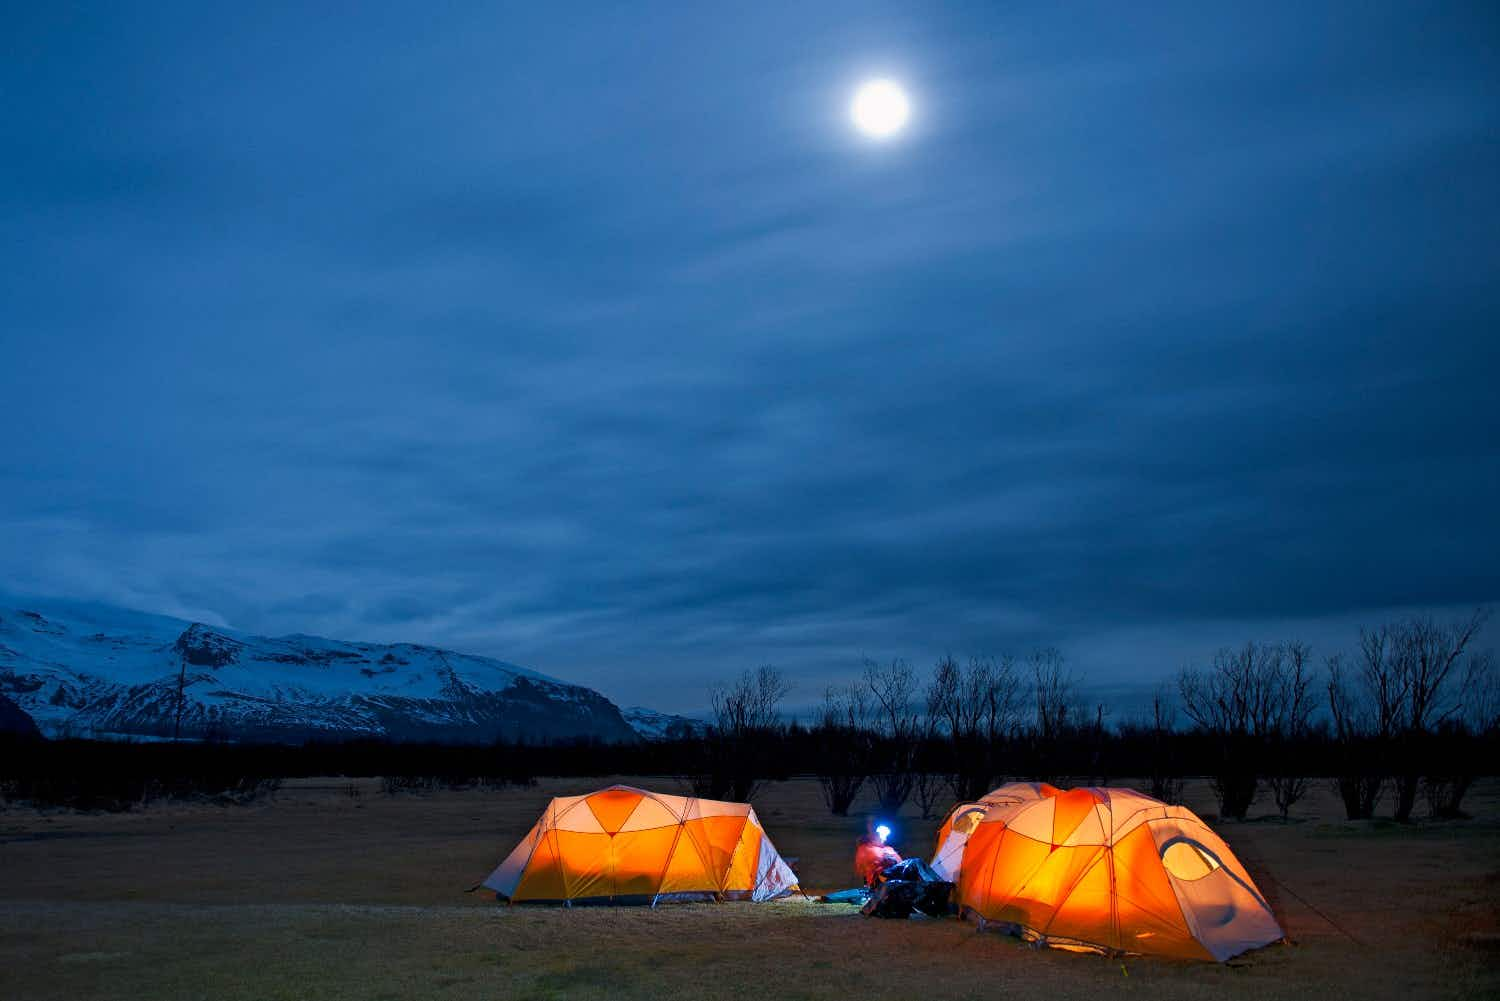 South Iceland tightens up rules on camping outdoors